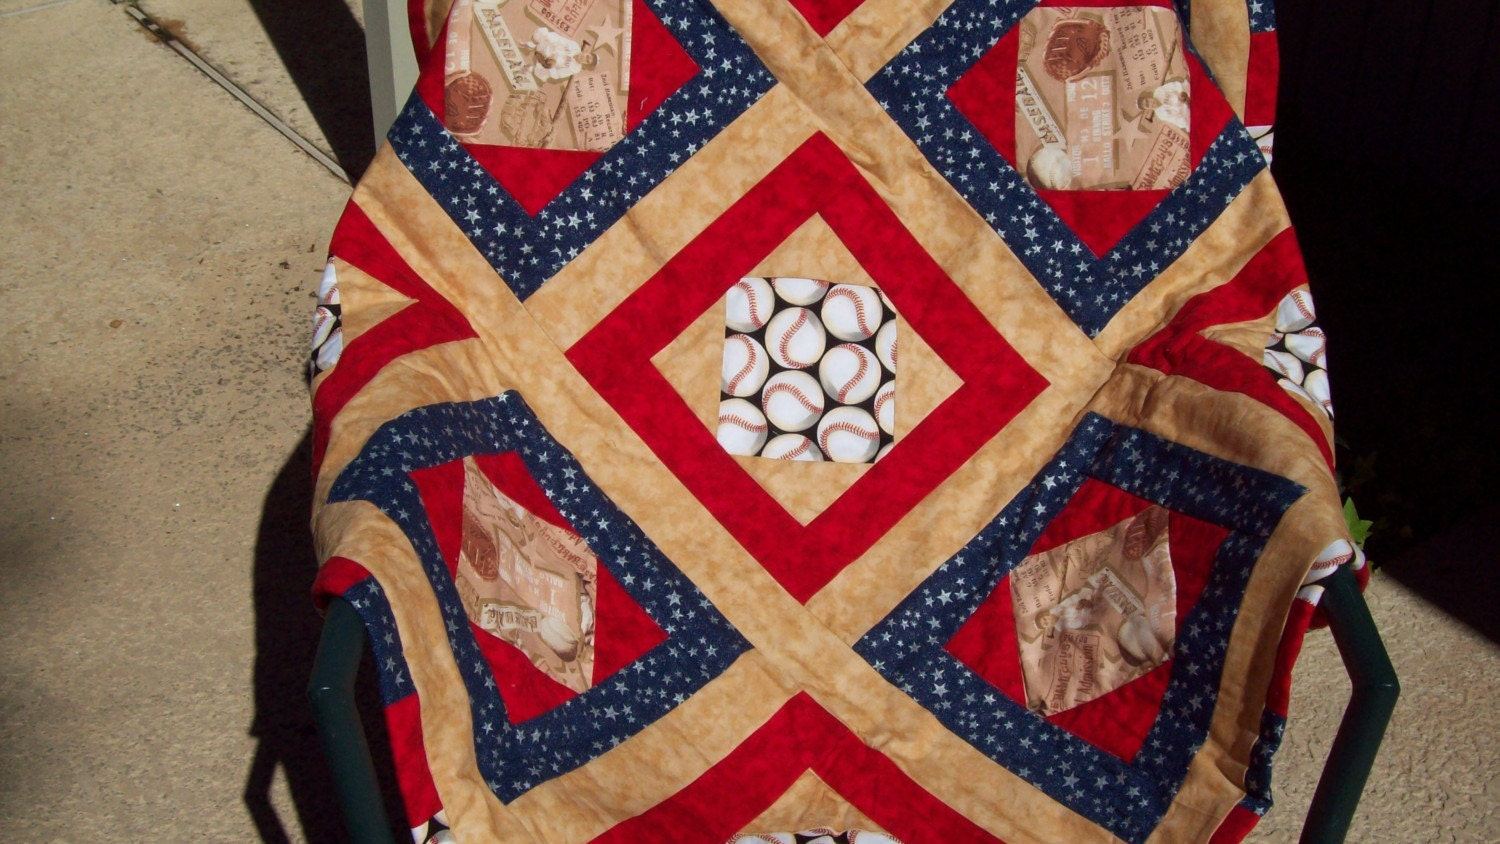 Quilt Patterns For Sports : Home Run Baseball/Sports theme blanket/quilt